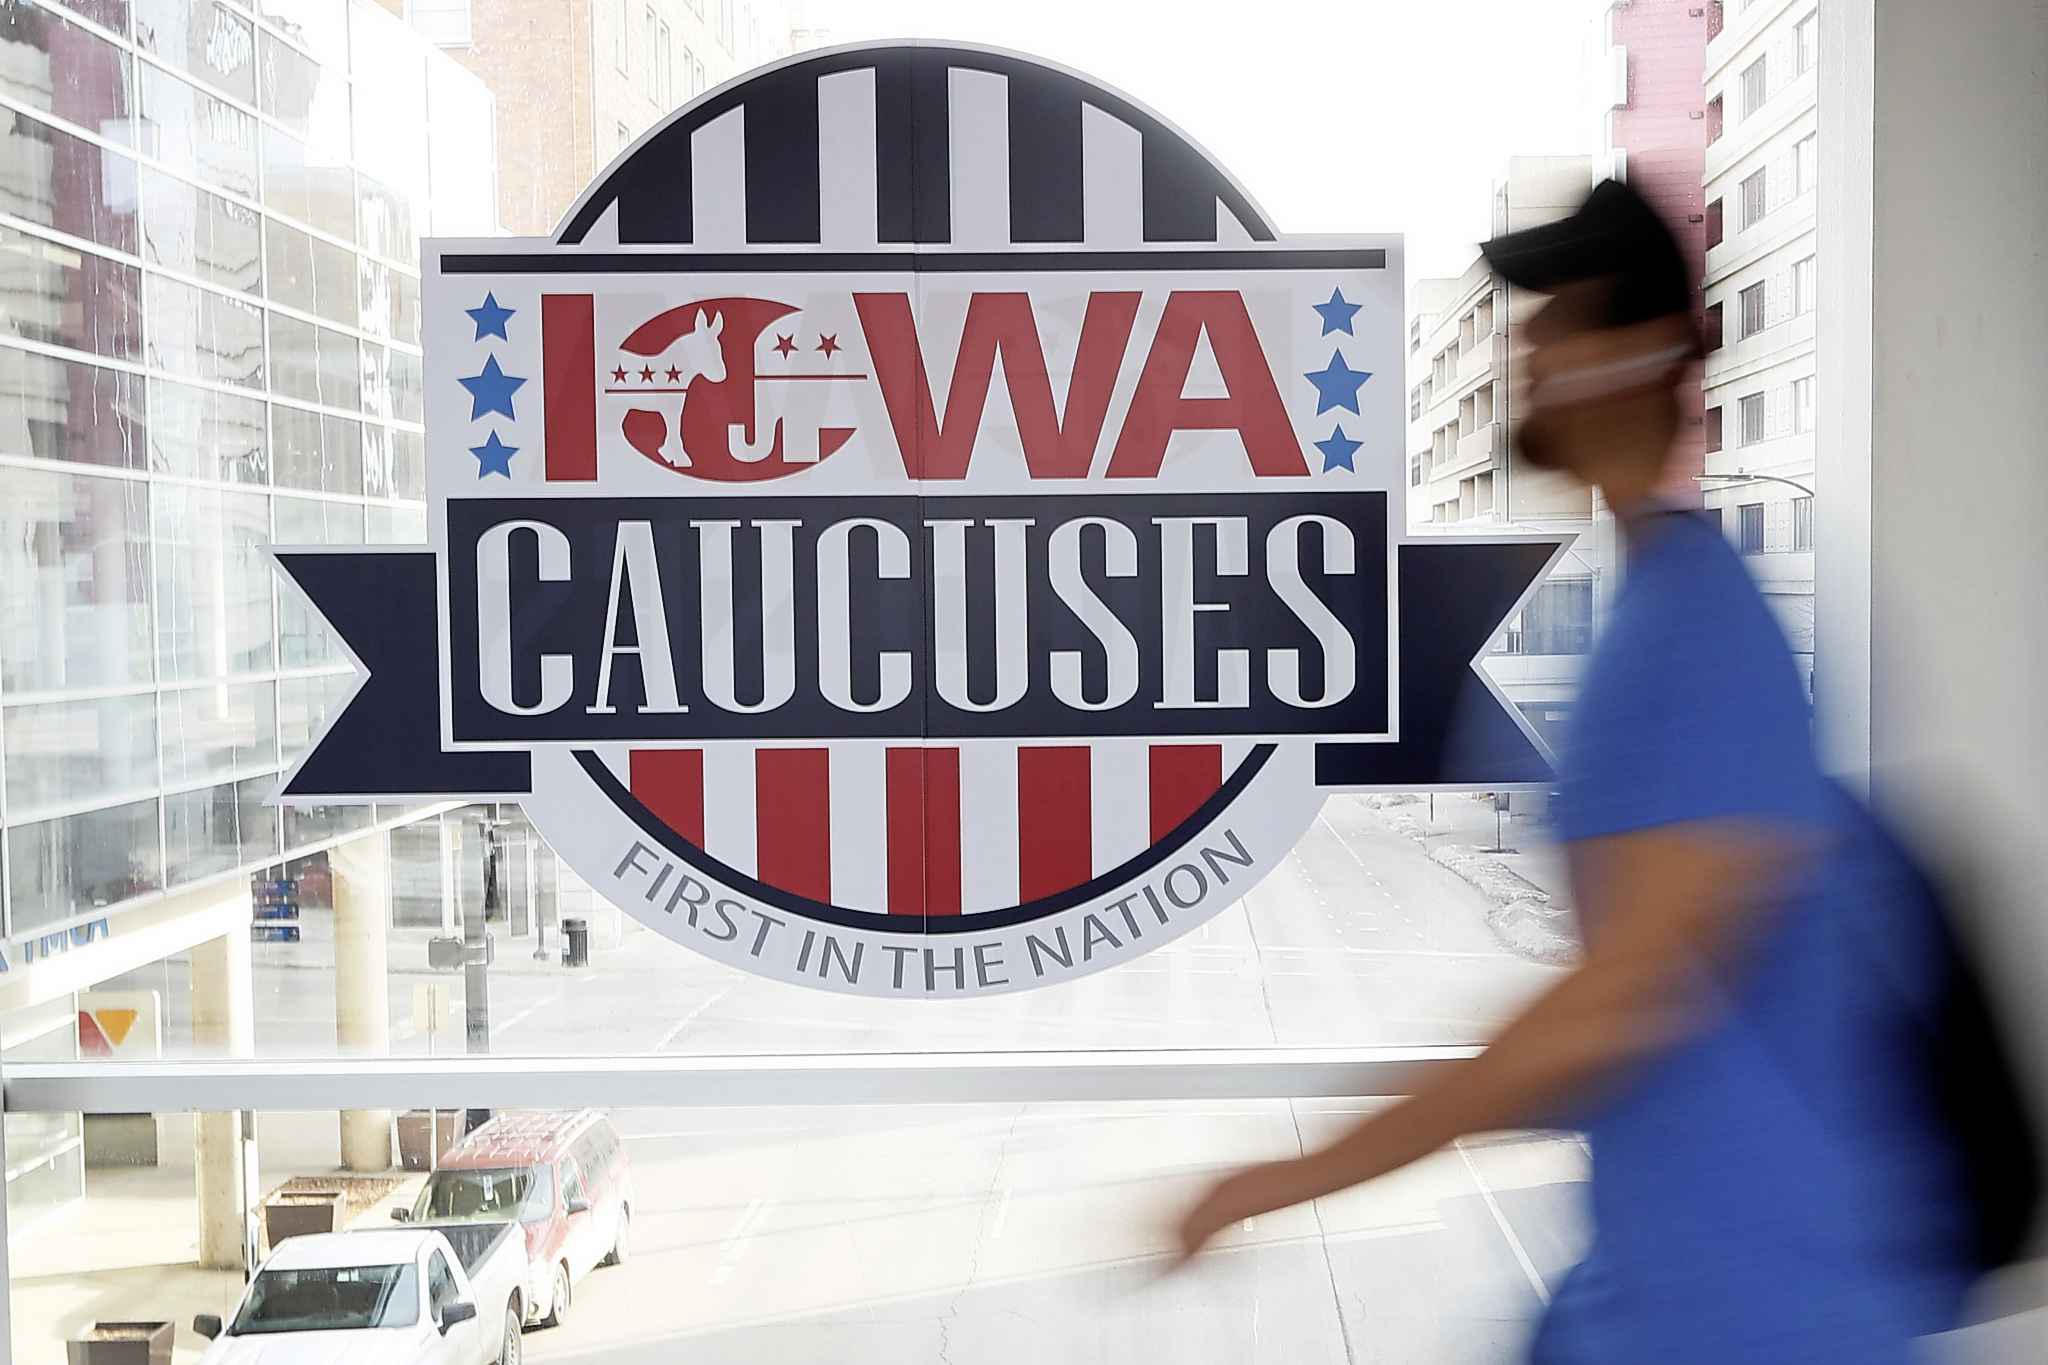 """The Democratic Party introduced new rules for this year's caucus that reallocates votes from candidates that are considered """"not viable"""" — those with less than 15 per cent support in any precinct — to """"viable"""" candidates, based on the voter's second choice. (Charlie Neibergall / The Associated Press)"""